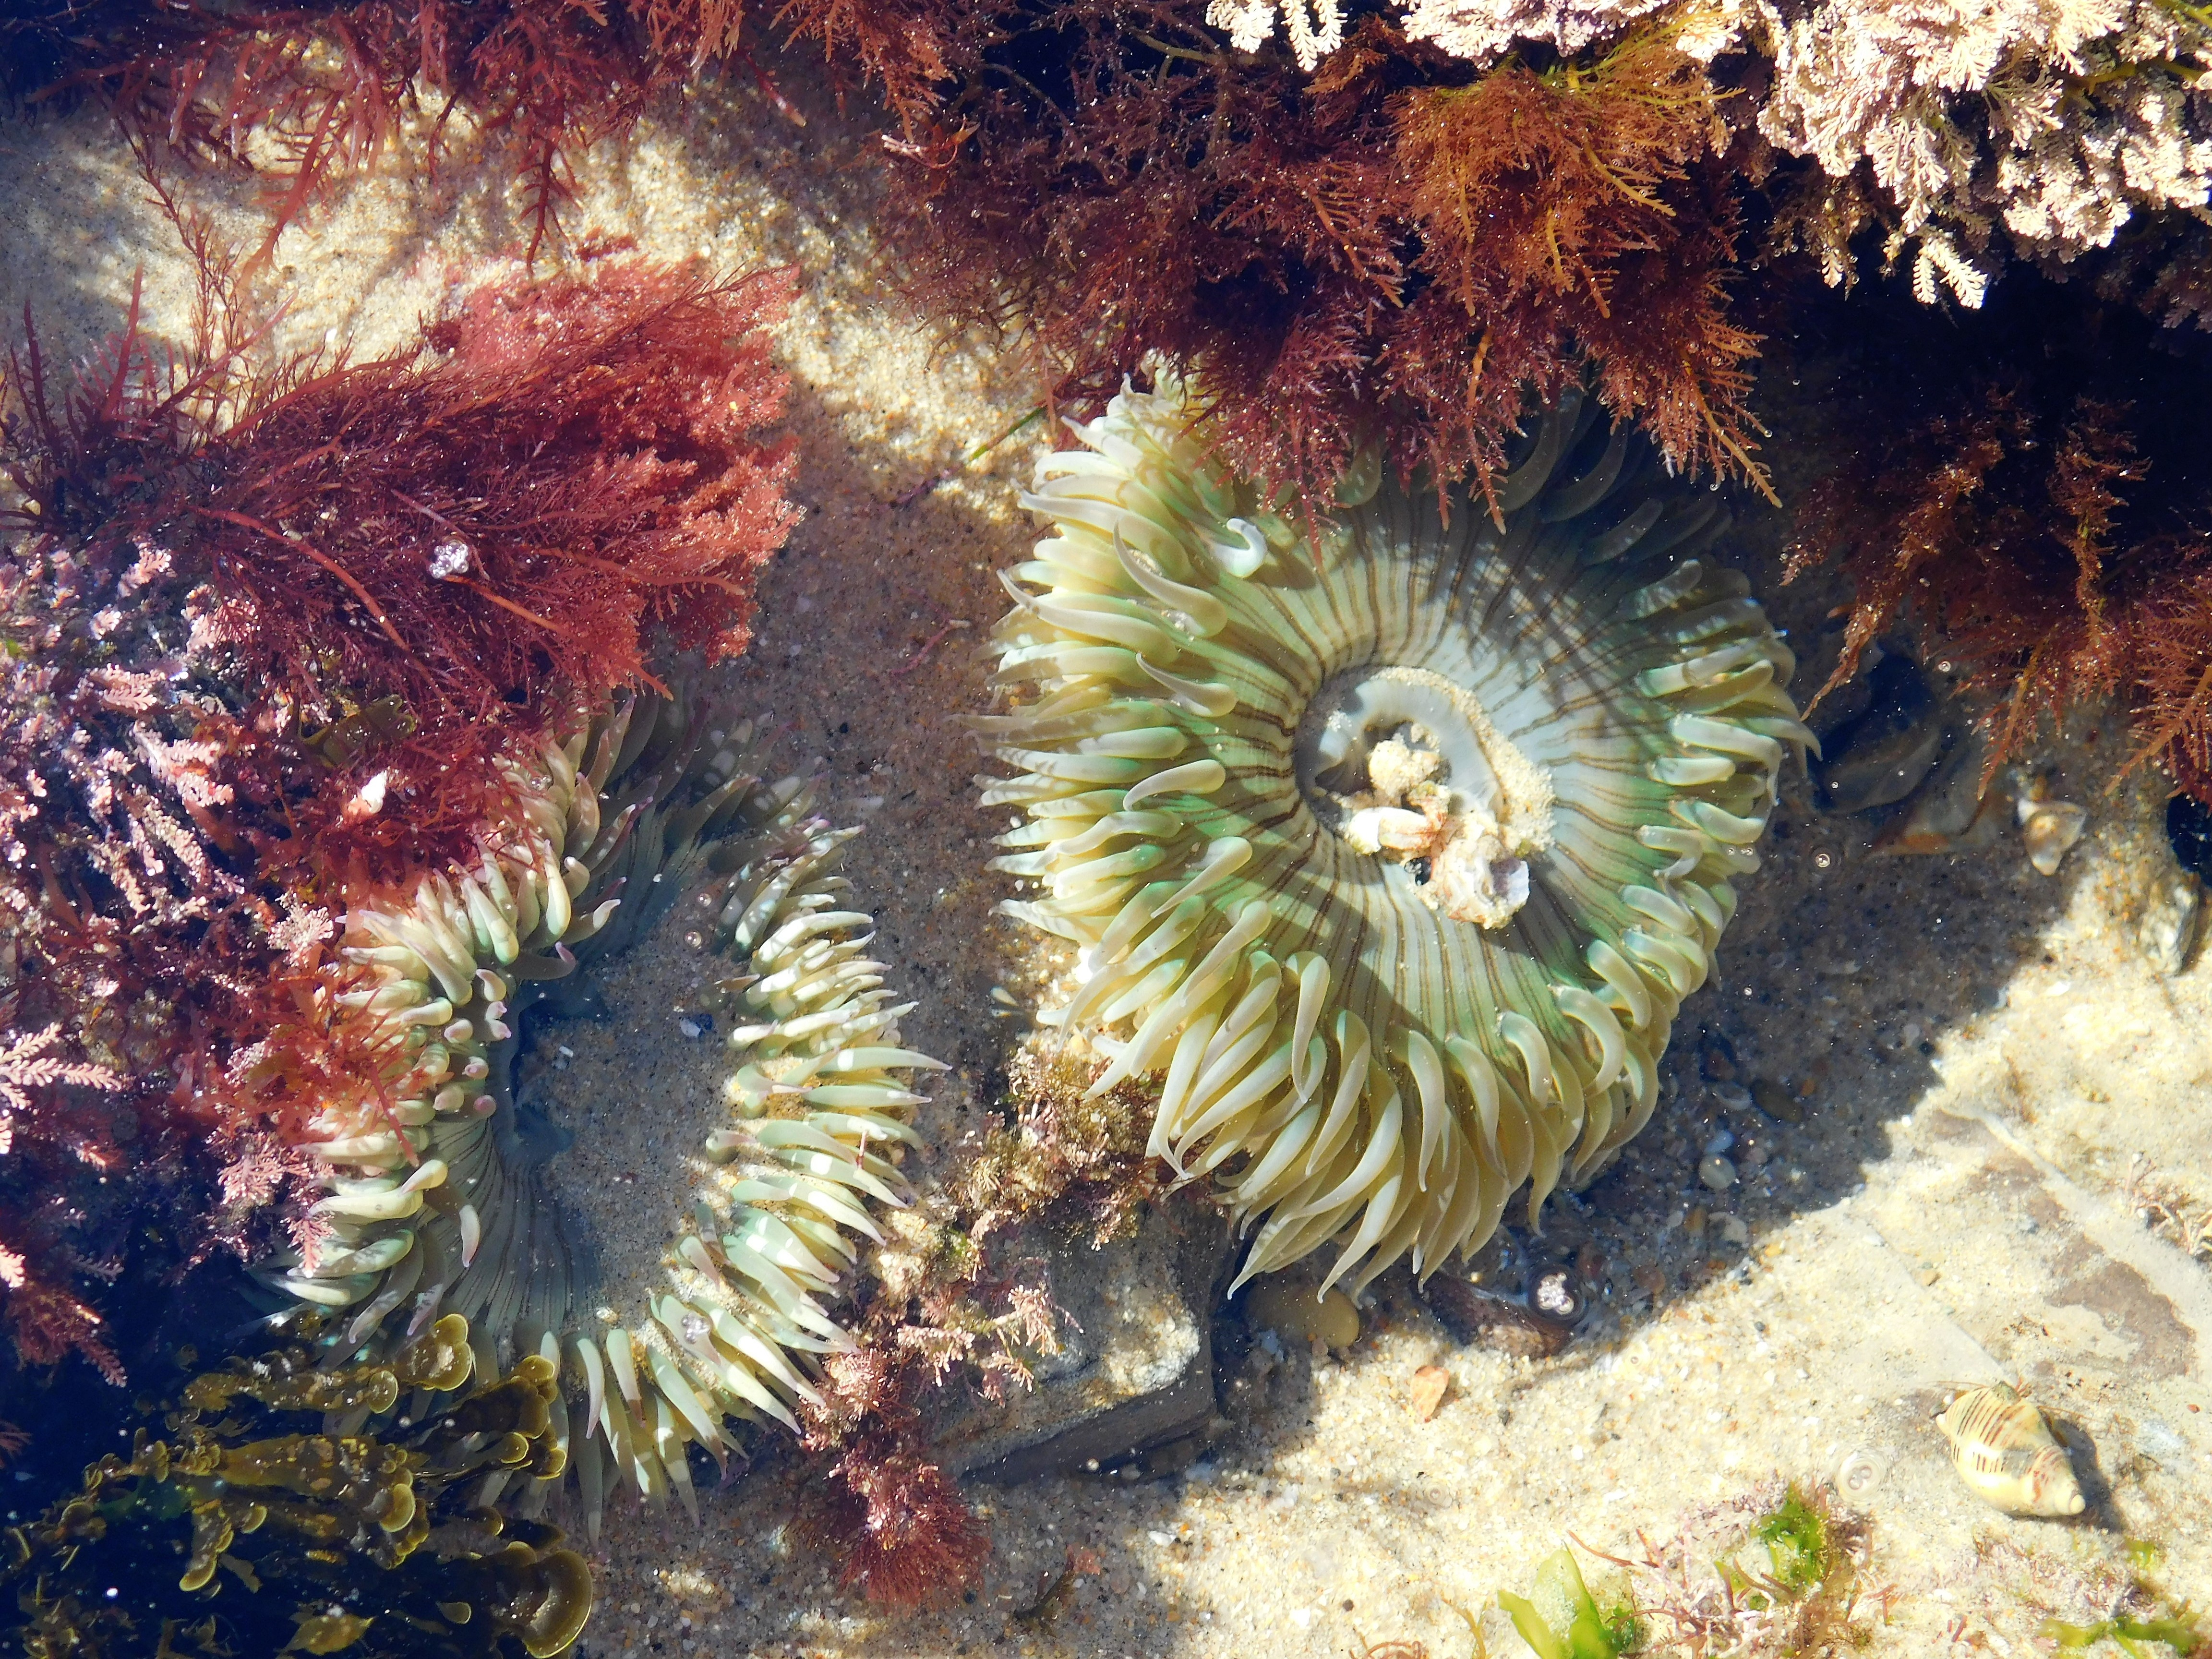 Tidepool walk crystal cove conservancy nvjuhfo Image collections